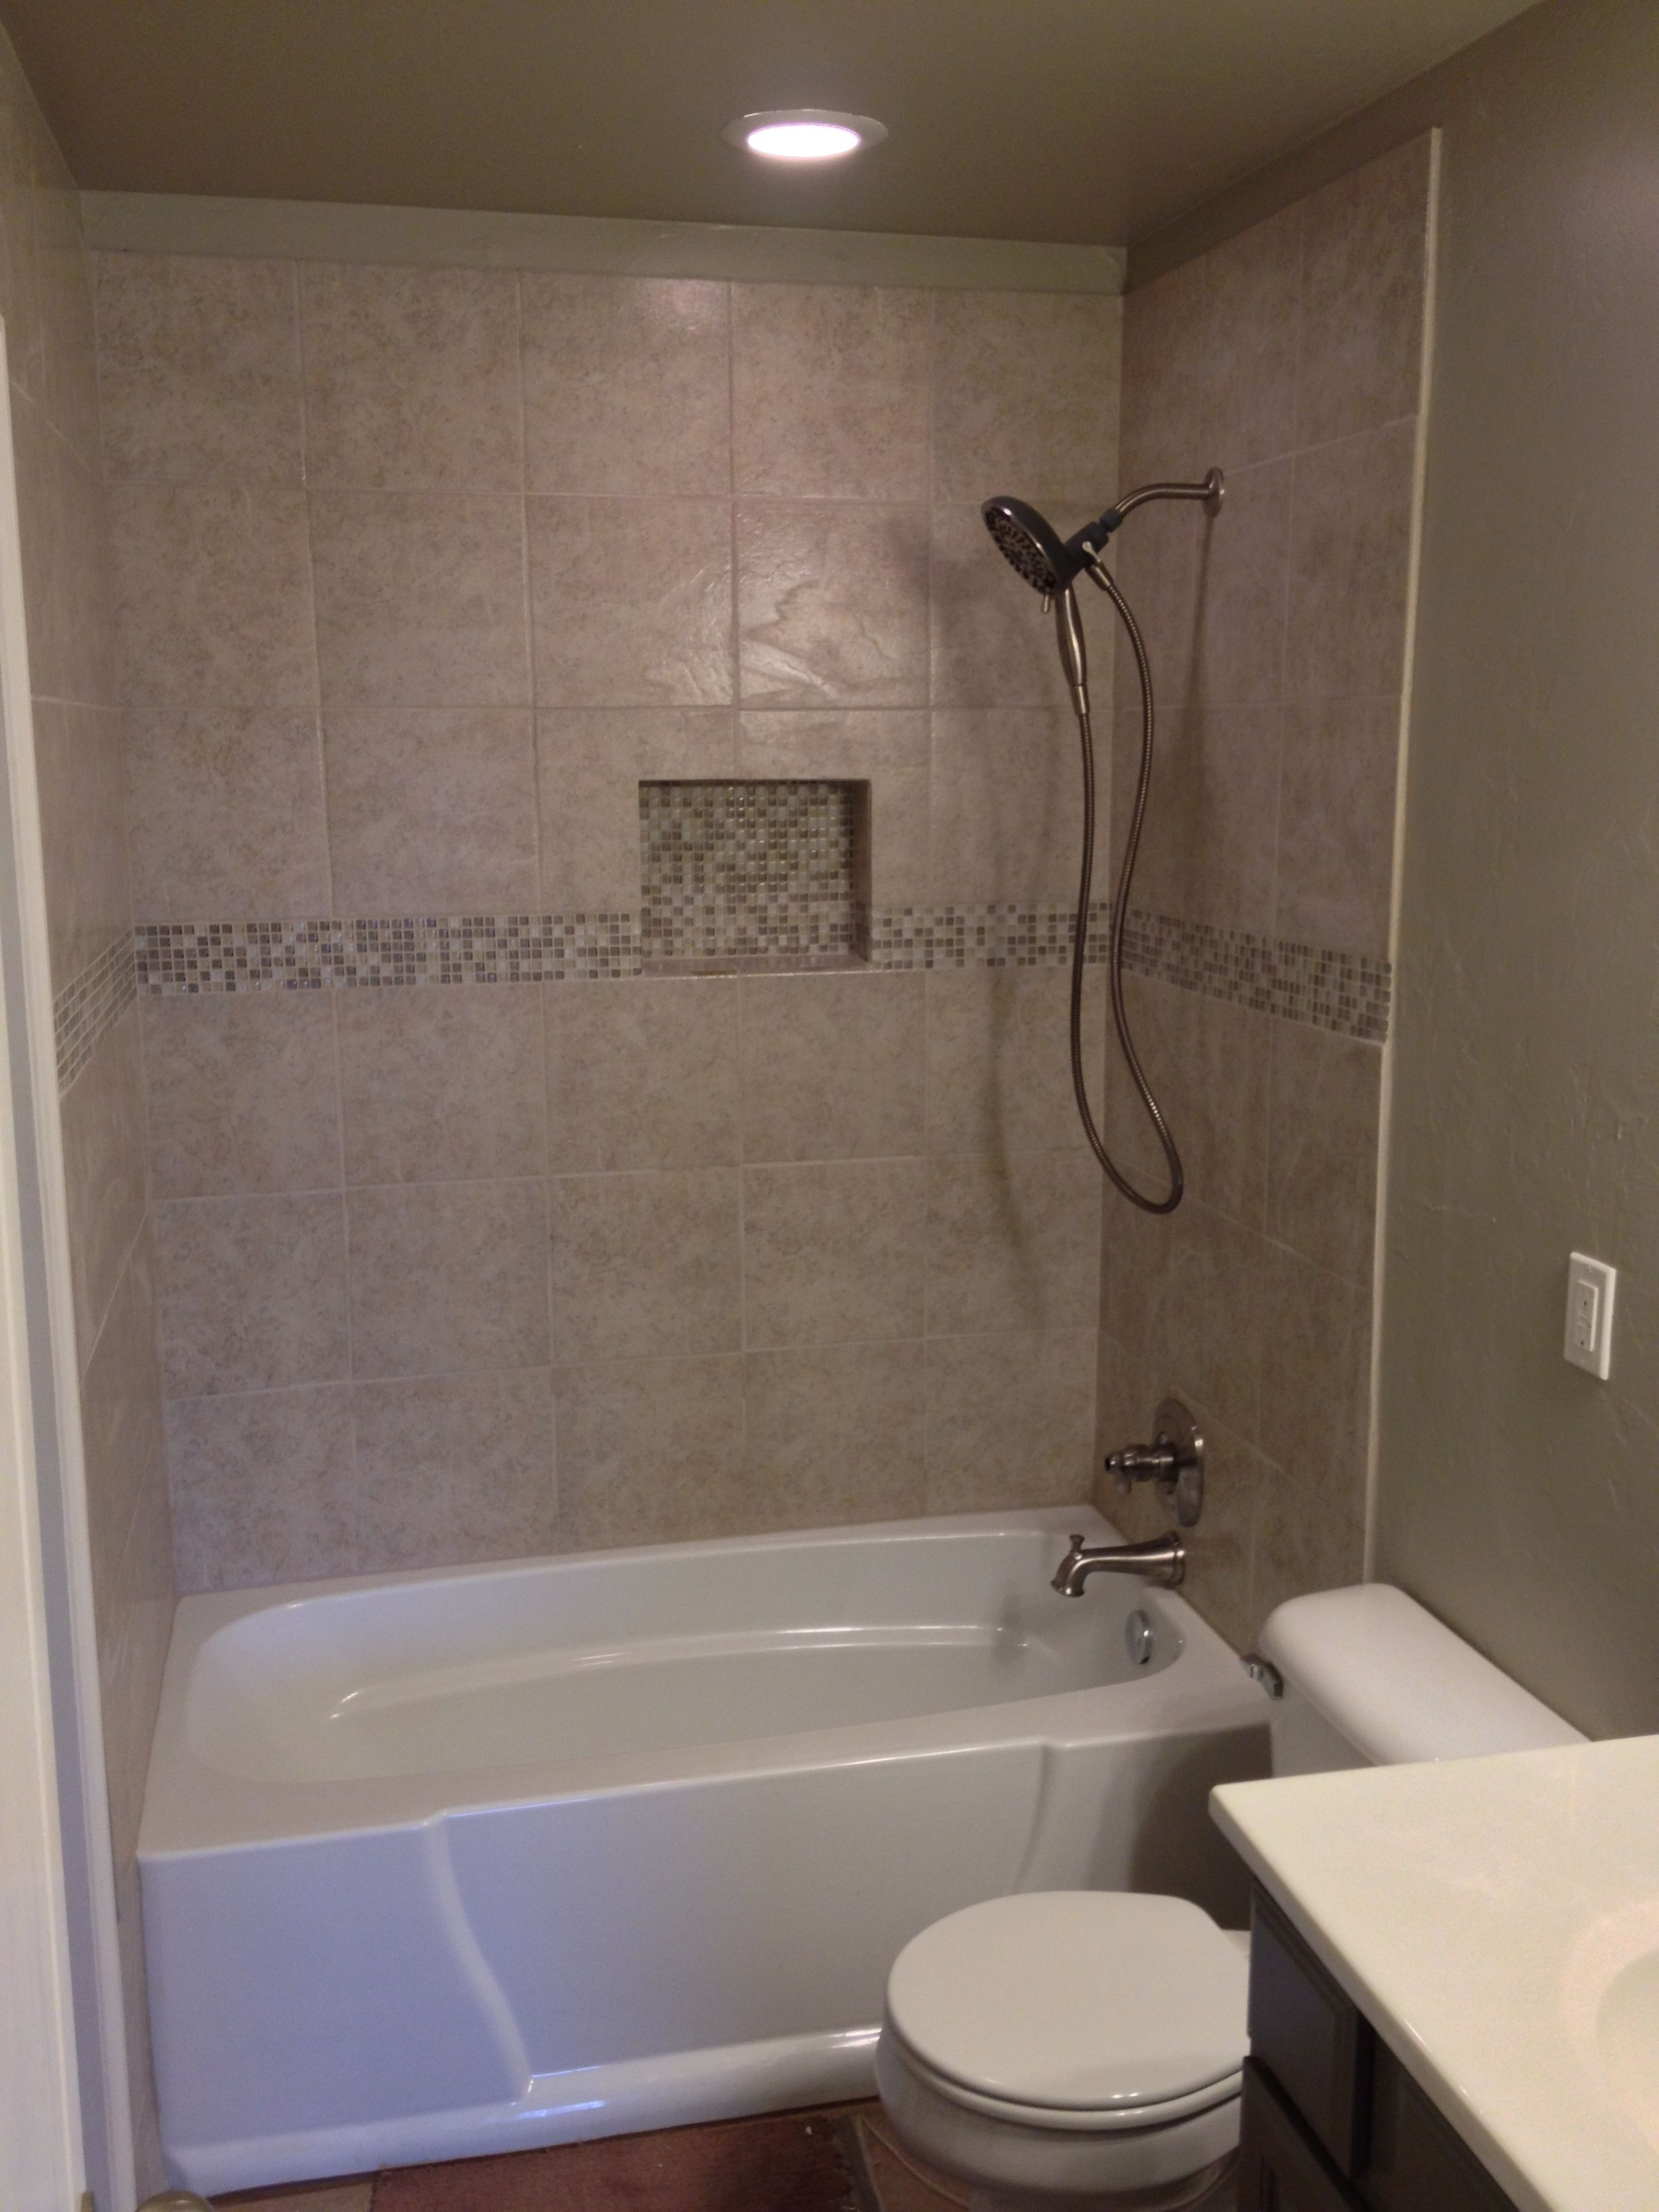 Bathroom Remodel Edmond Ok oklahoma city & edmond showers and backsplash: new bathtub and